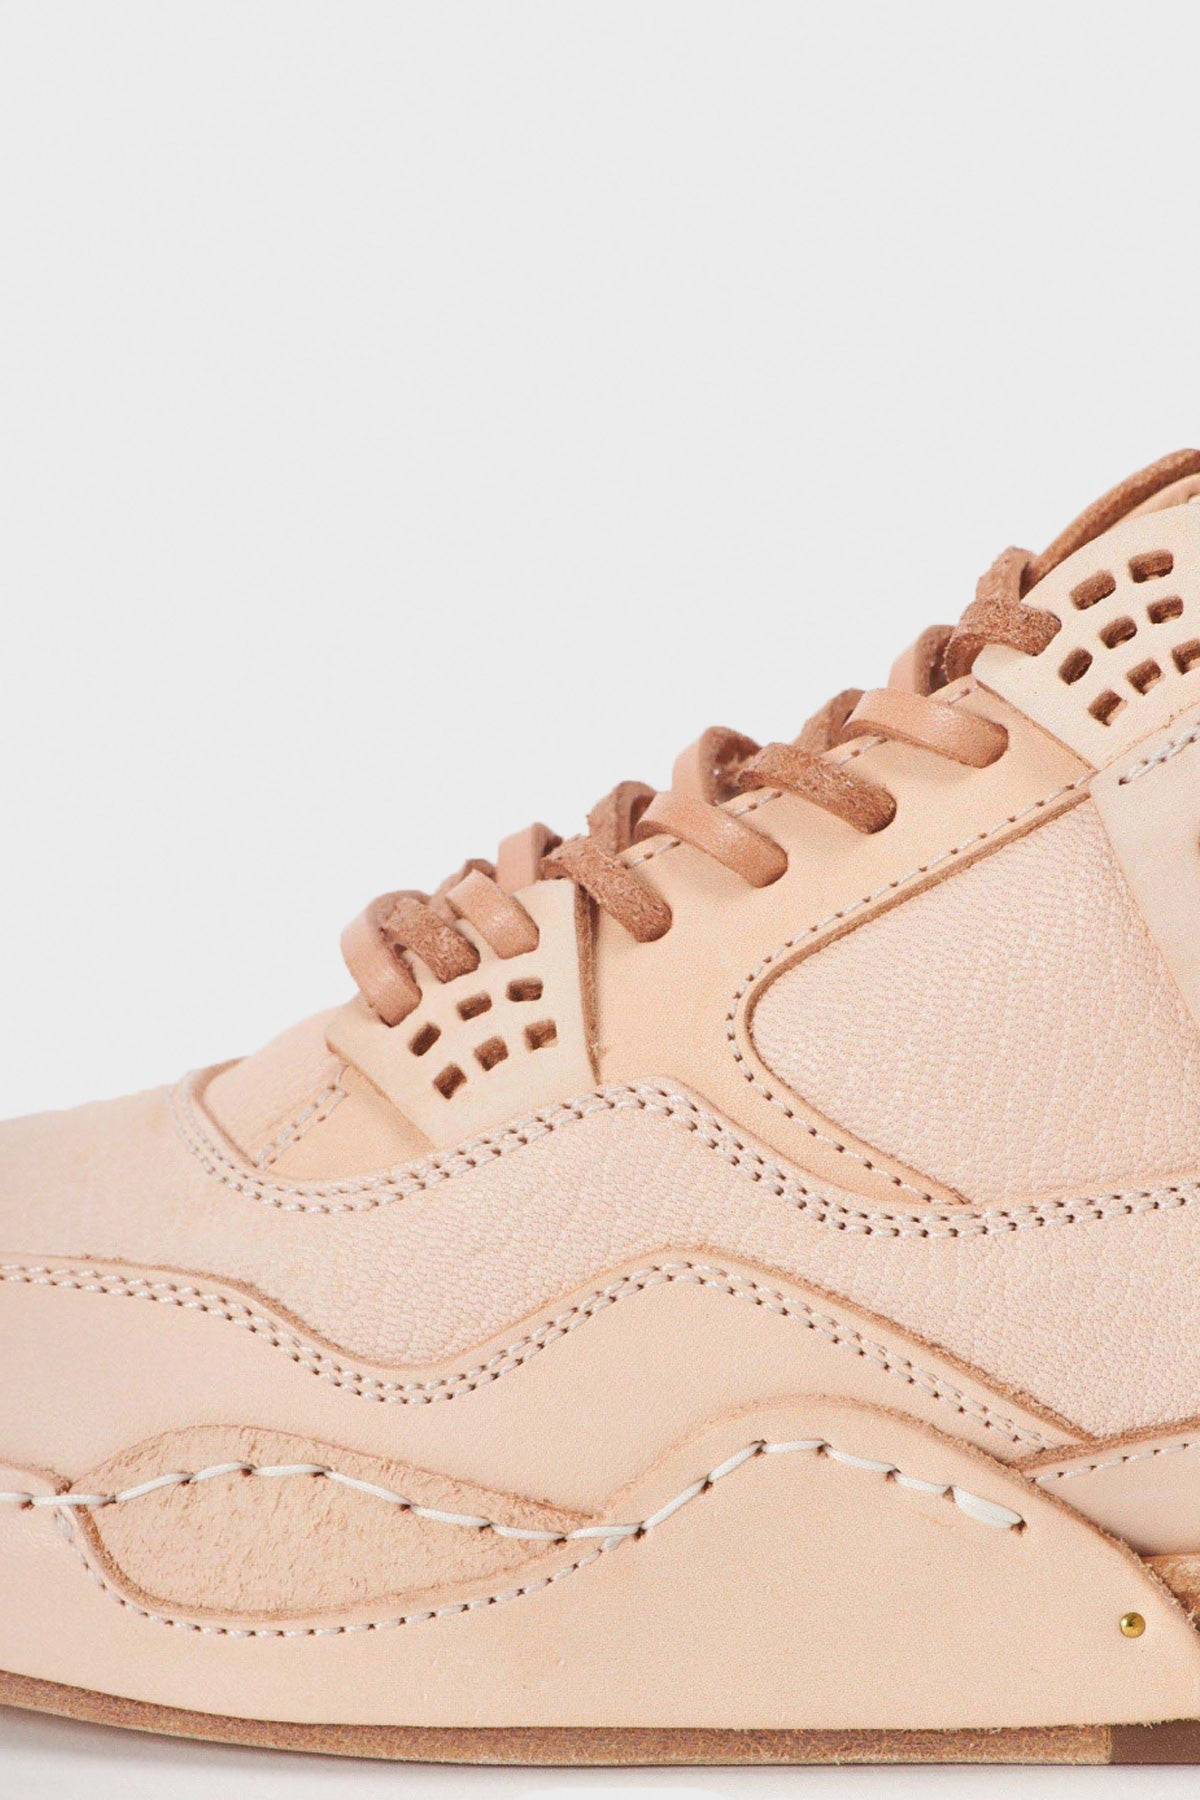 Hender Scheme - MIP-10 - Natural - Canoe Club